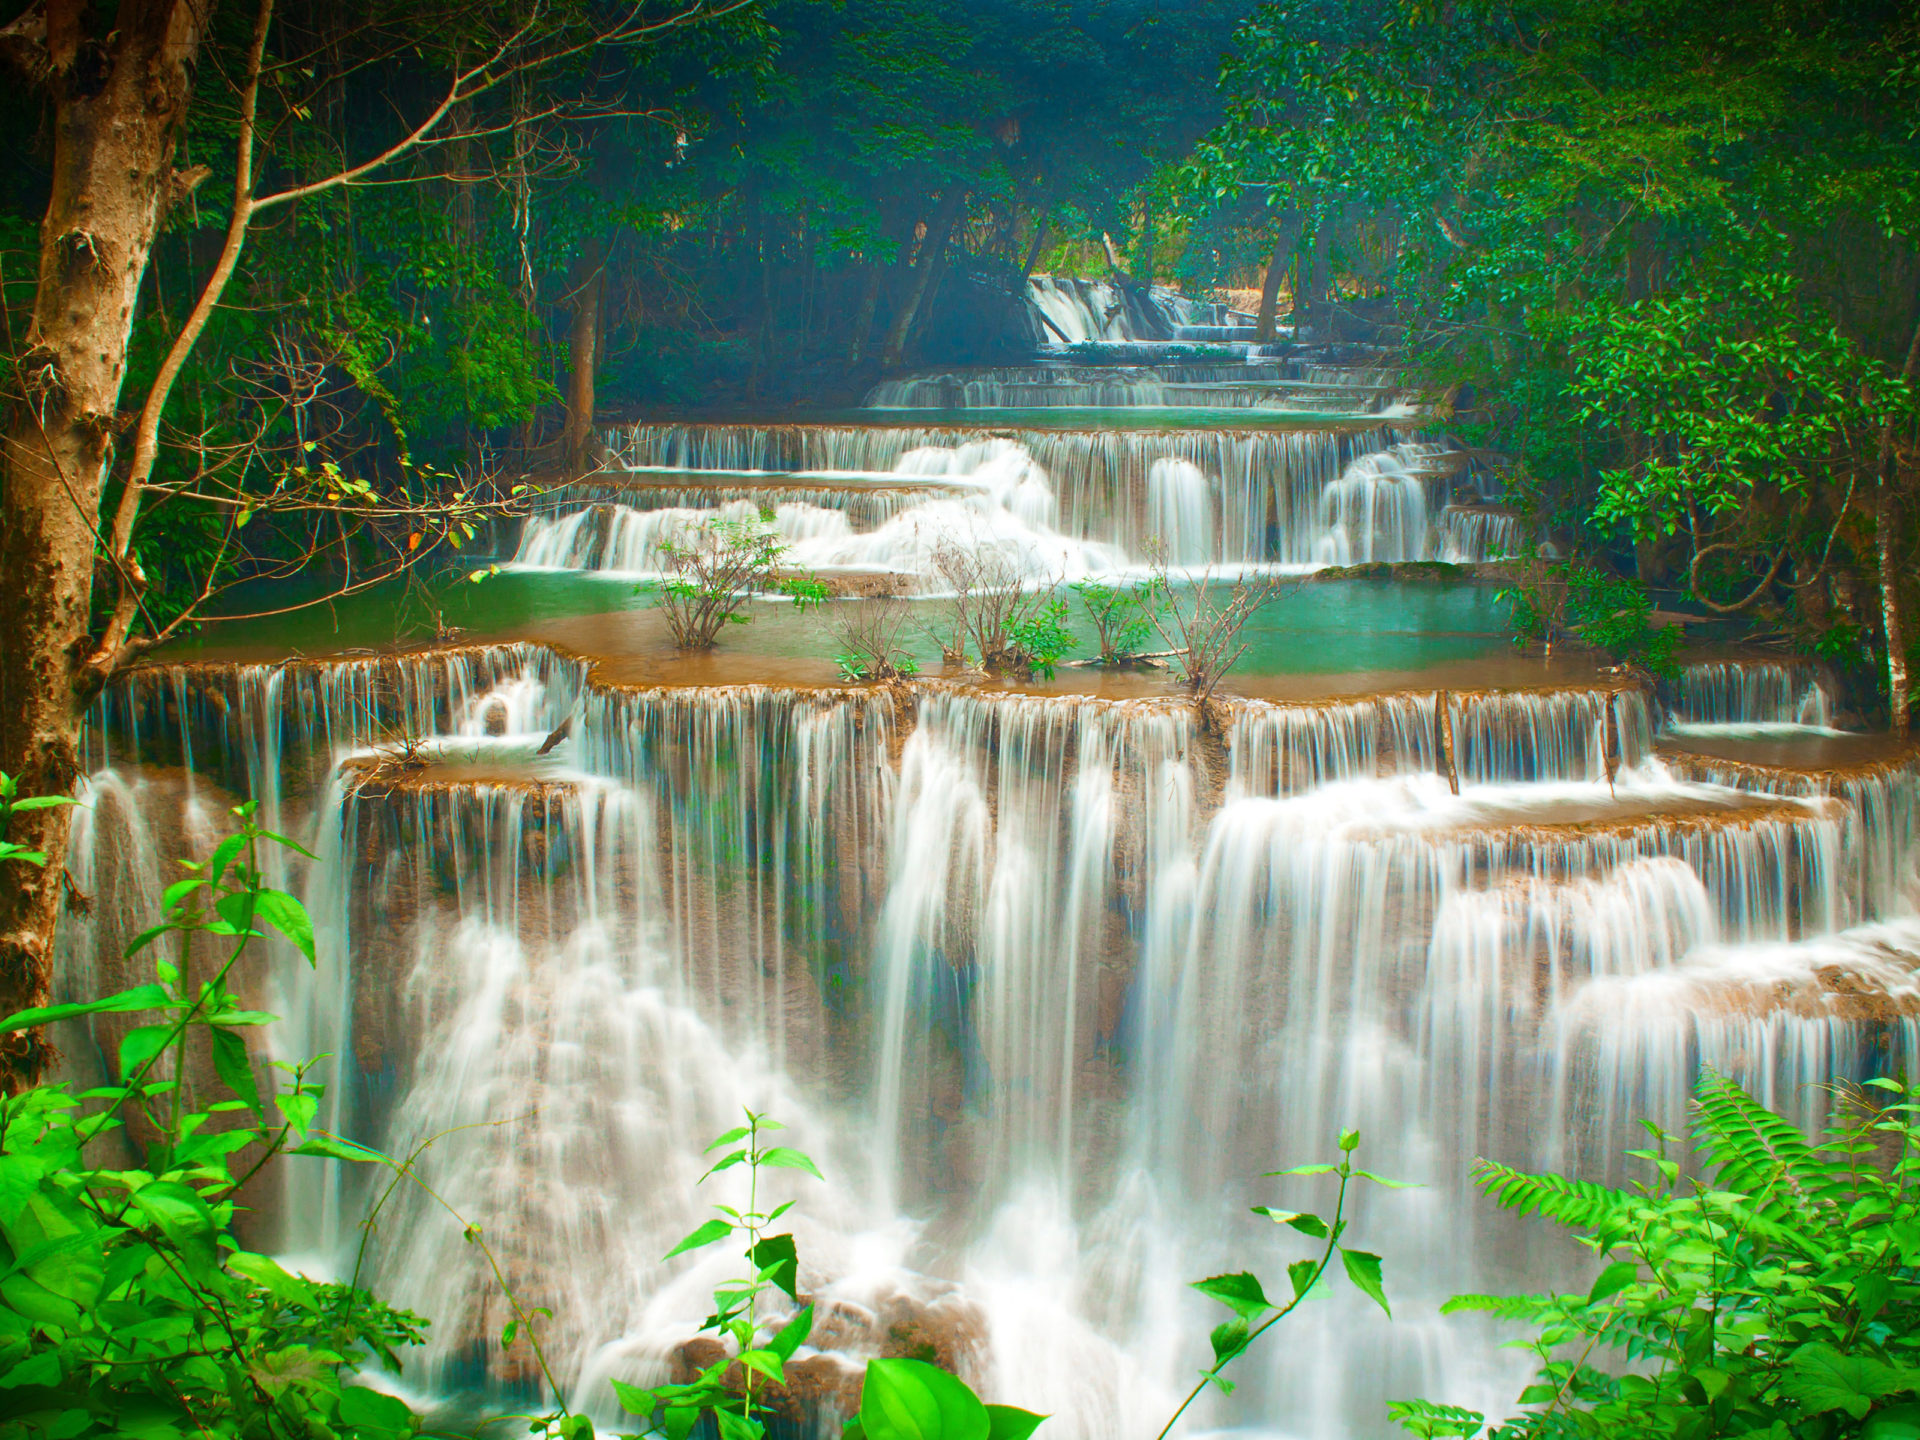 Iphone 5 Hd Wallpaper Nature Tropics Cascade Waterfalls Green Trees Huay Maekamin